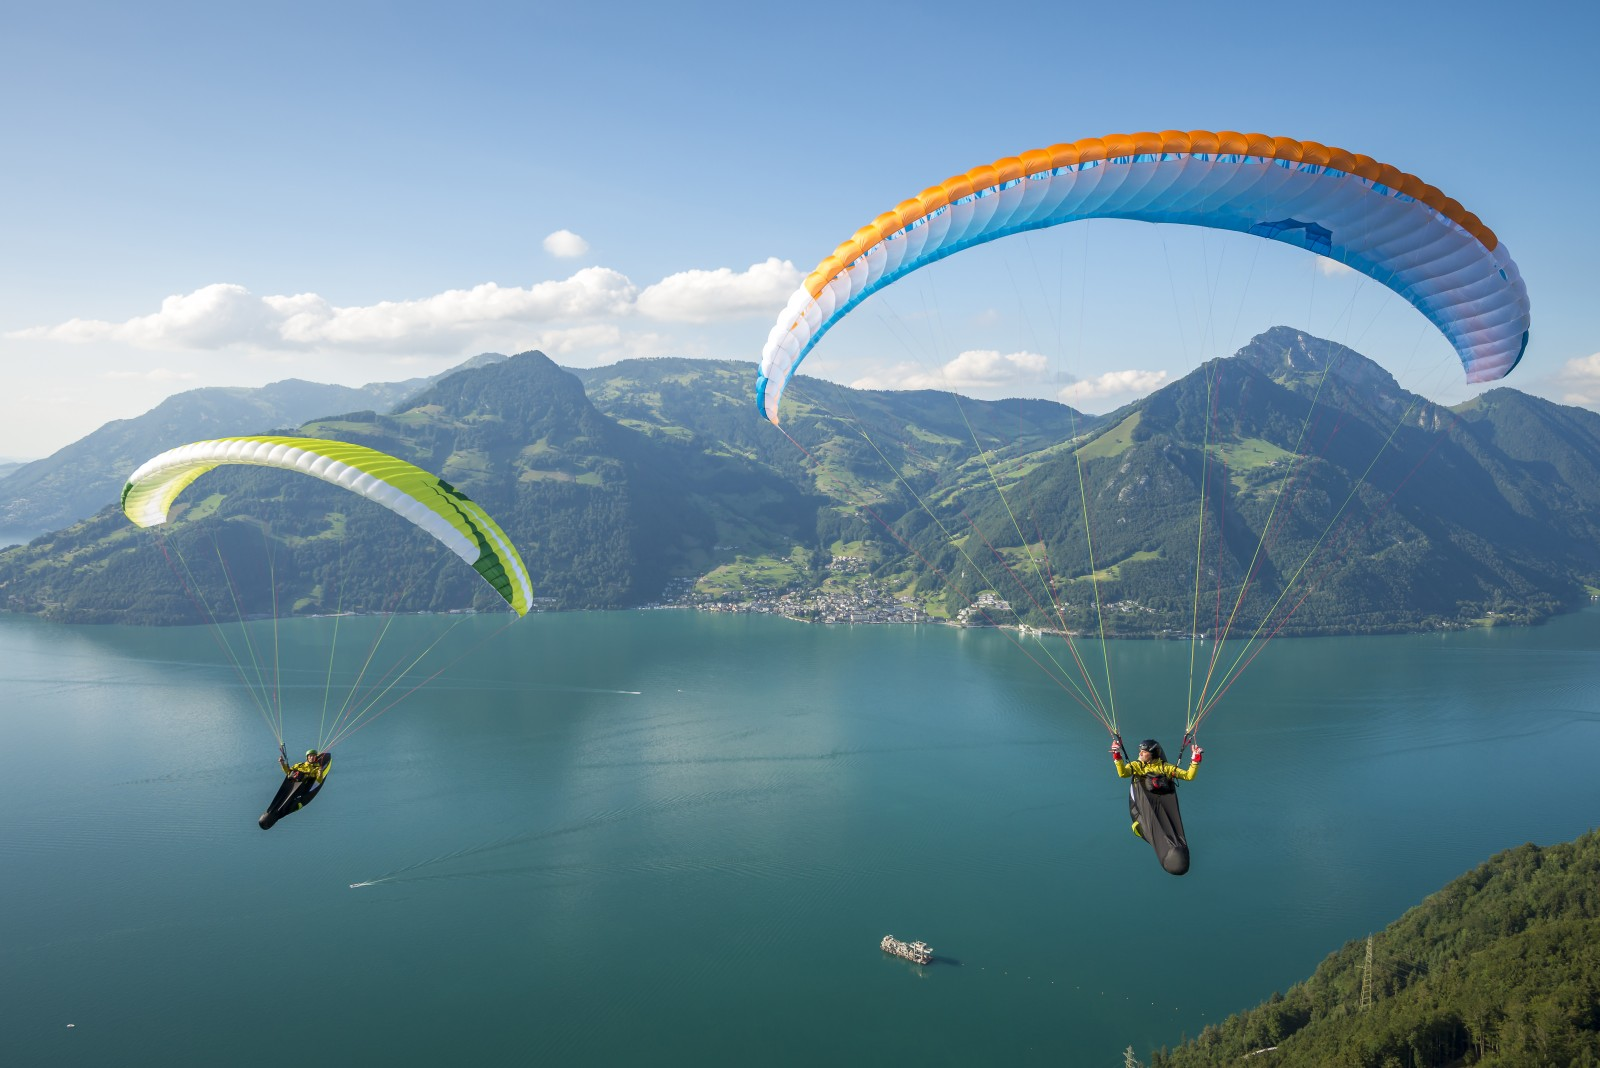 Arriba Skywalk Paragliders